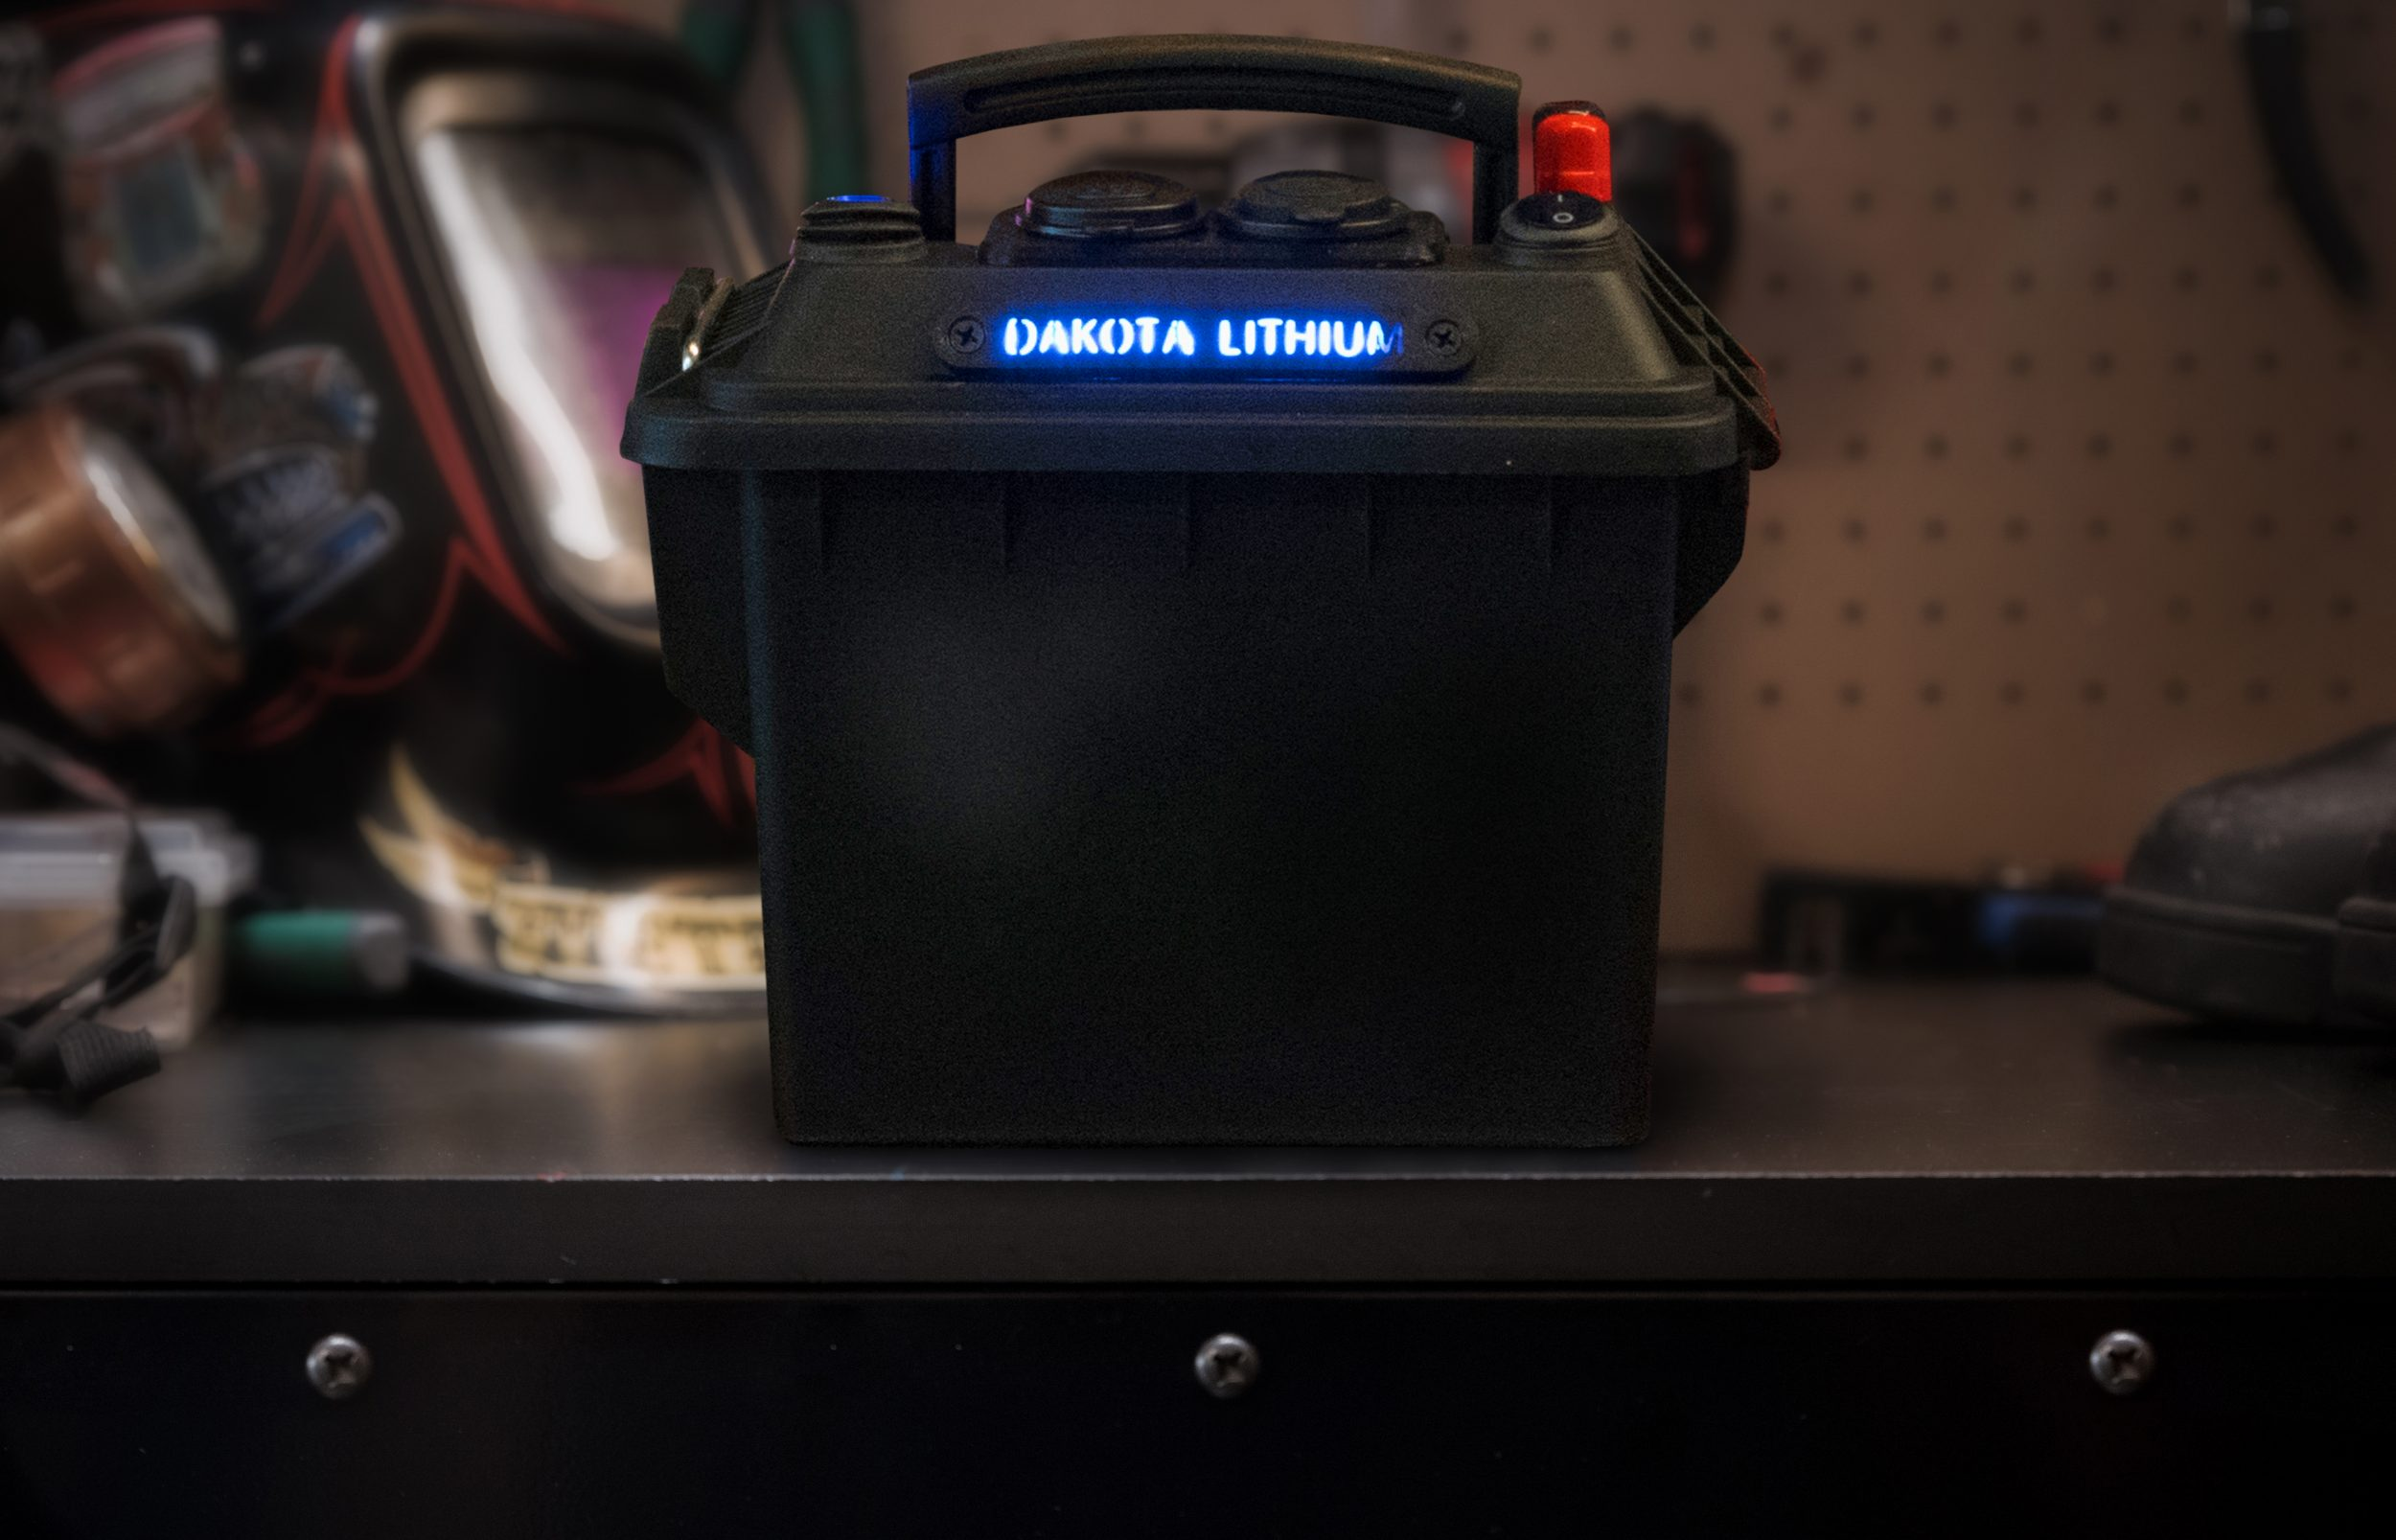 Dakota Lithium Power Box – 12v, 7Ah